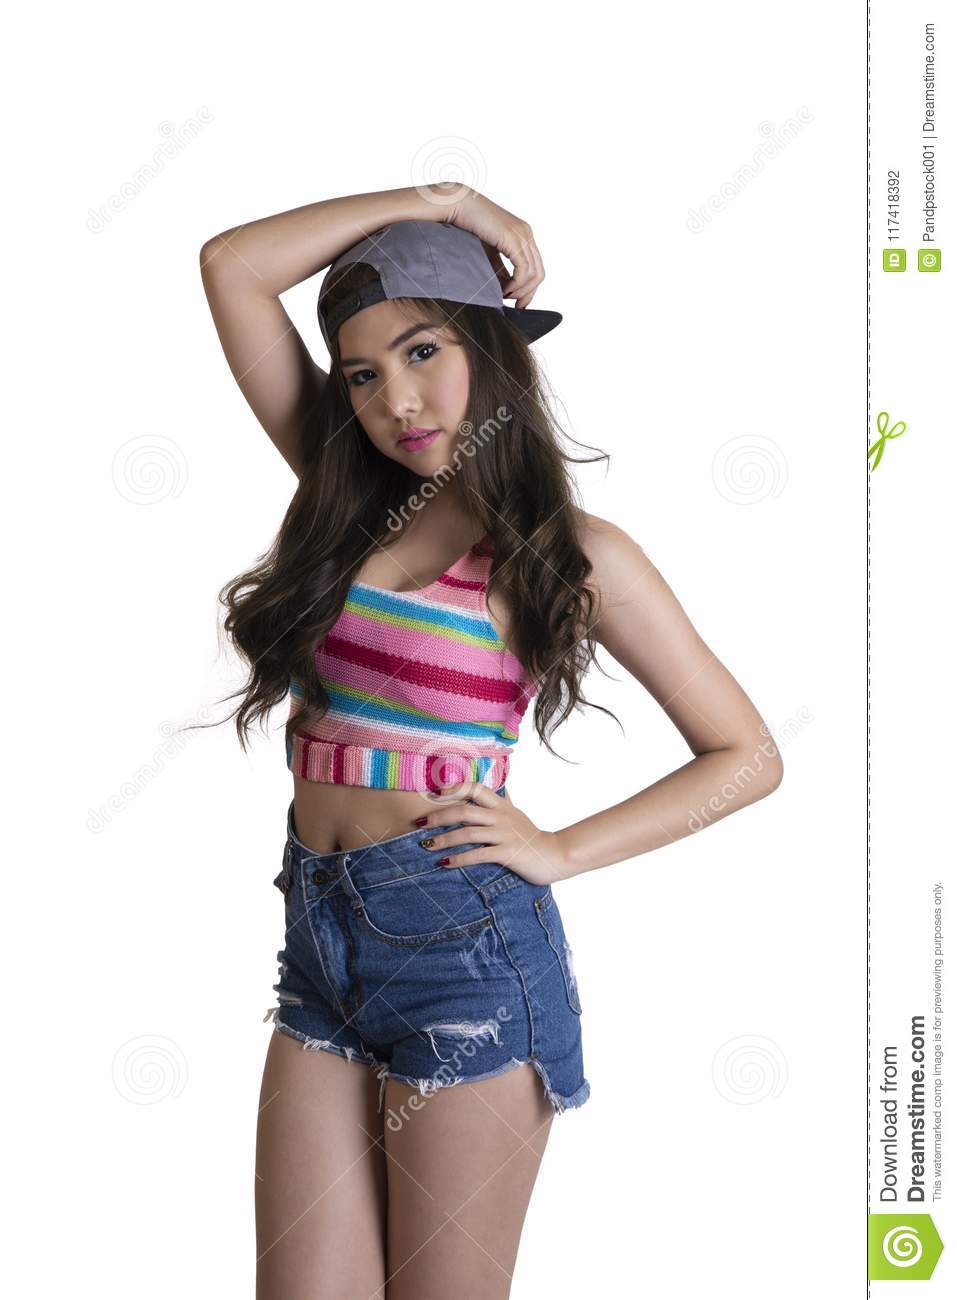 7676969e5b Cute Girl Wareing Blue Jeans Shorts And Colorful Vest With Cap F ...